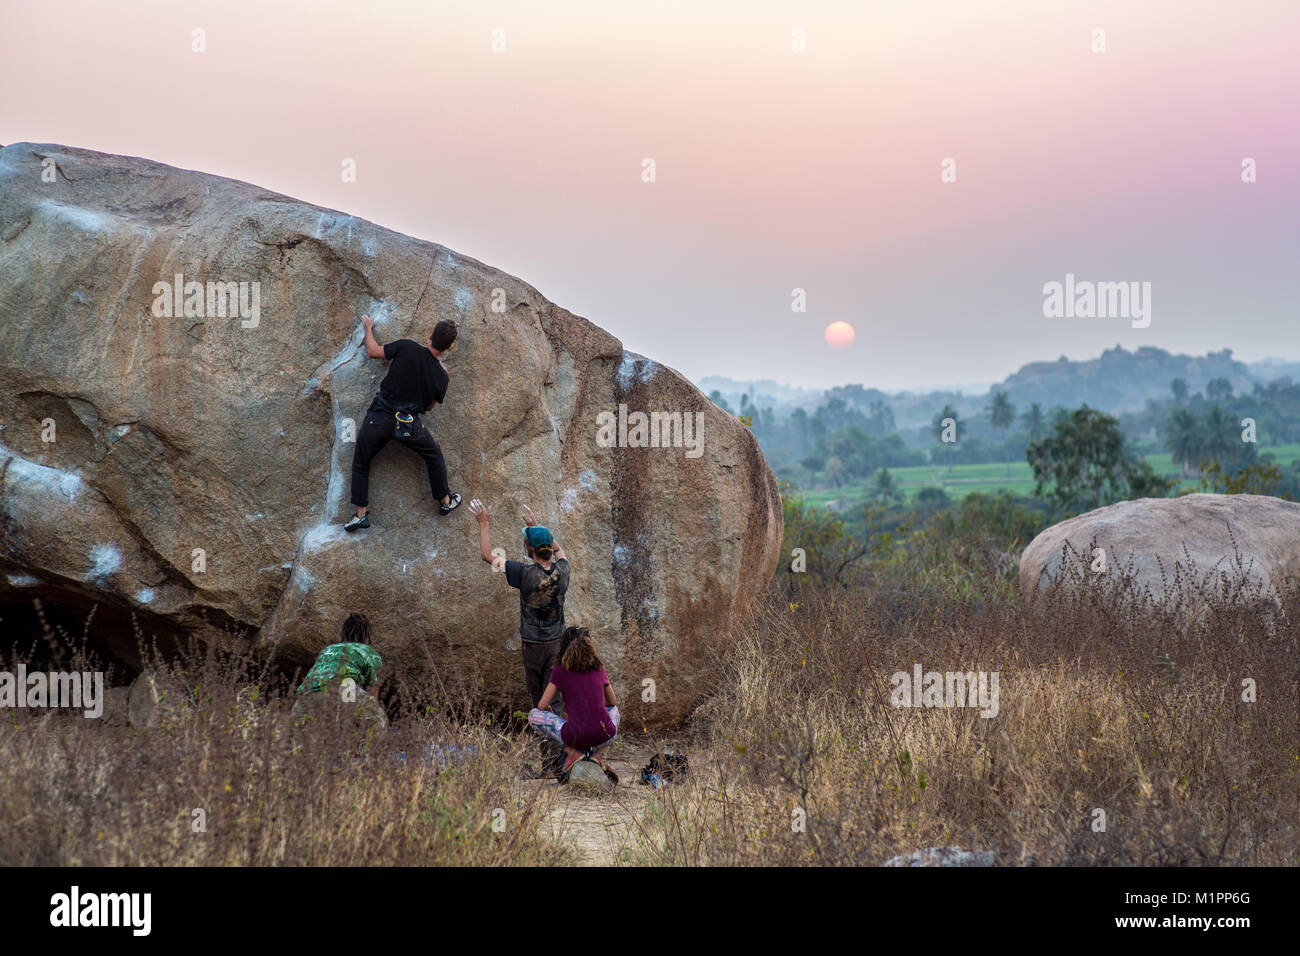 A group of people bouldering in Hampi,India at sunset. - Stock Image